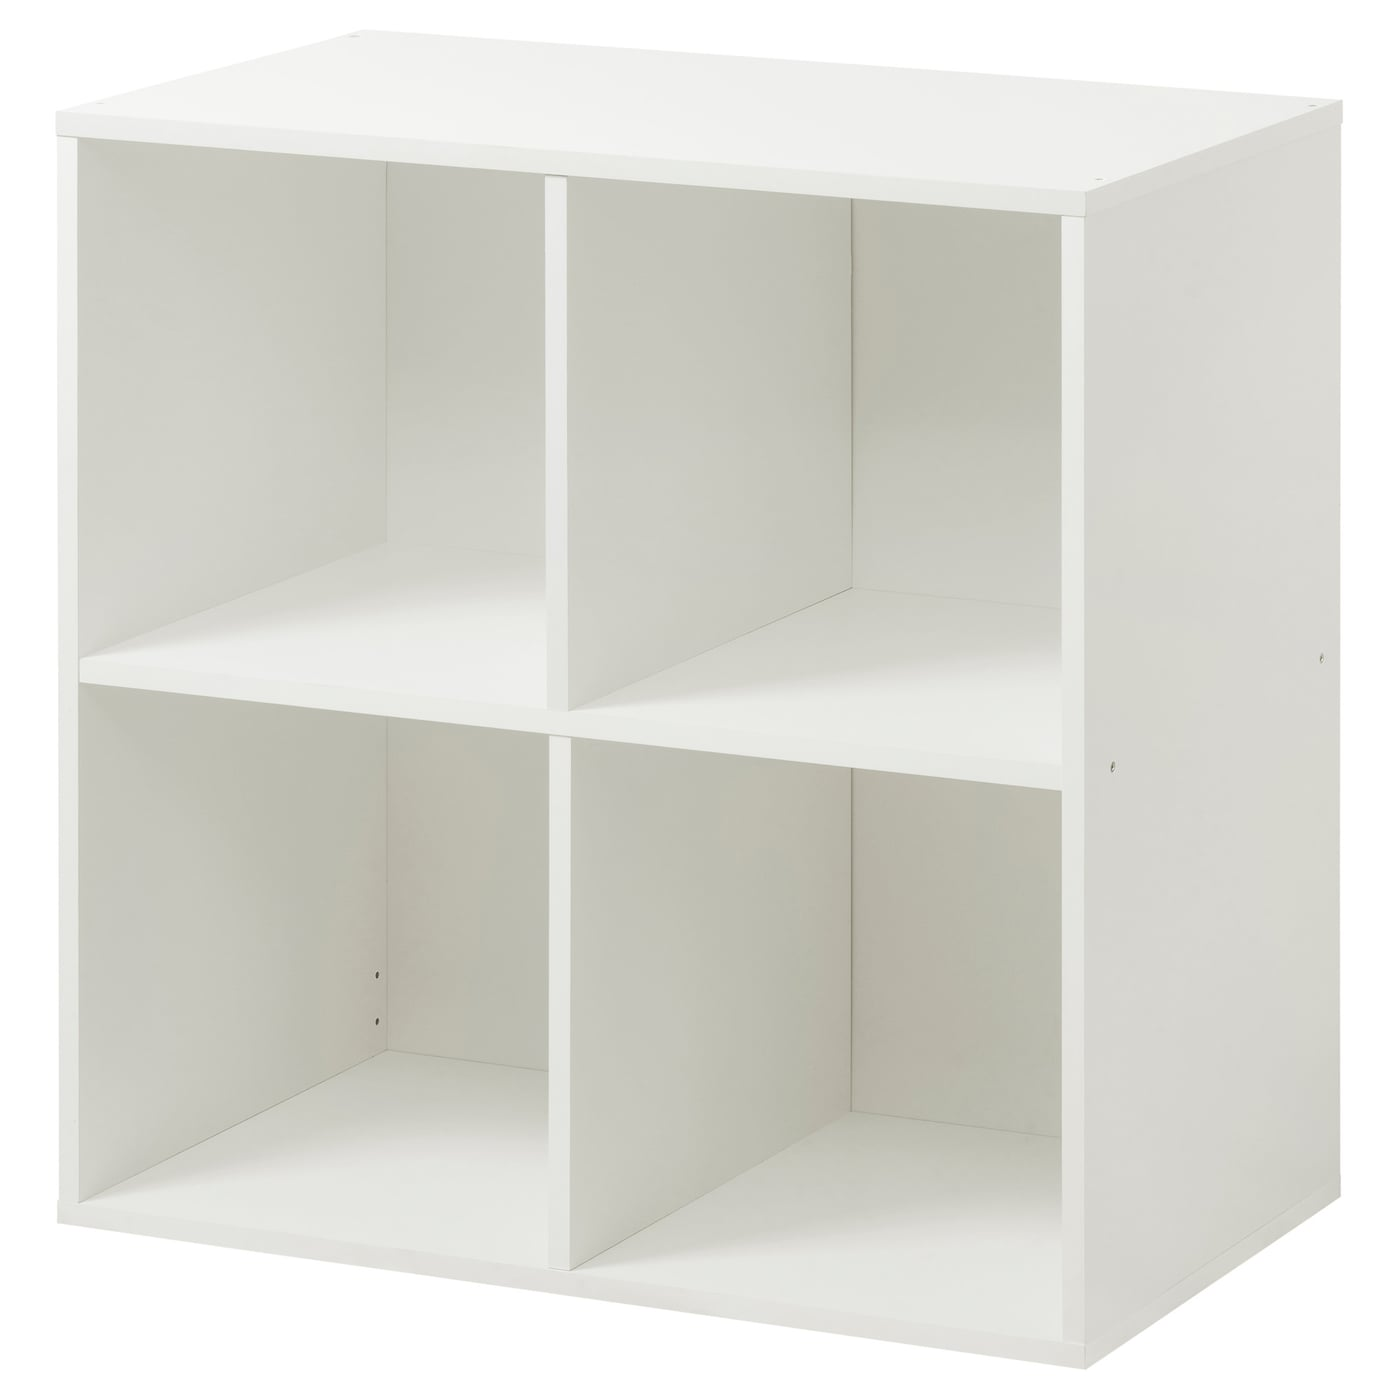 ikea wall units shelving units amp systems ikea ireland 11654